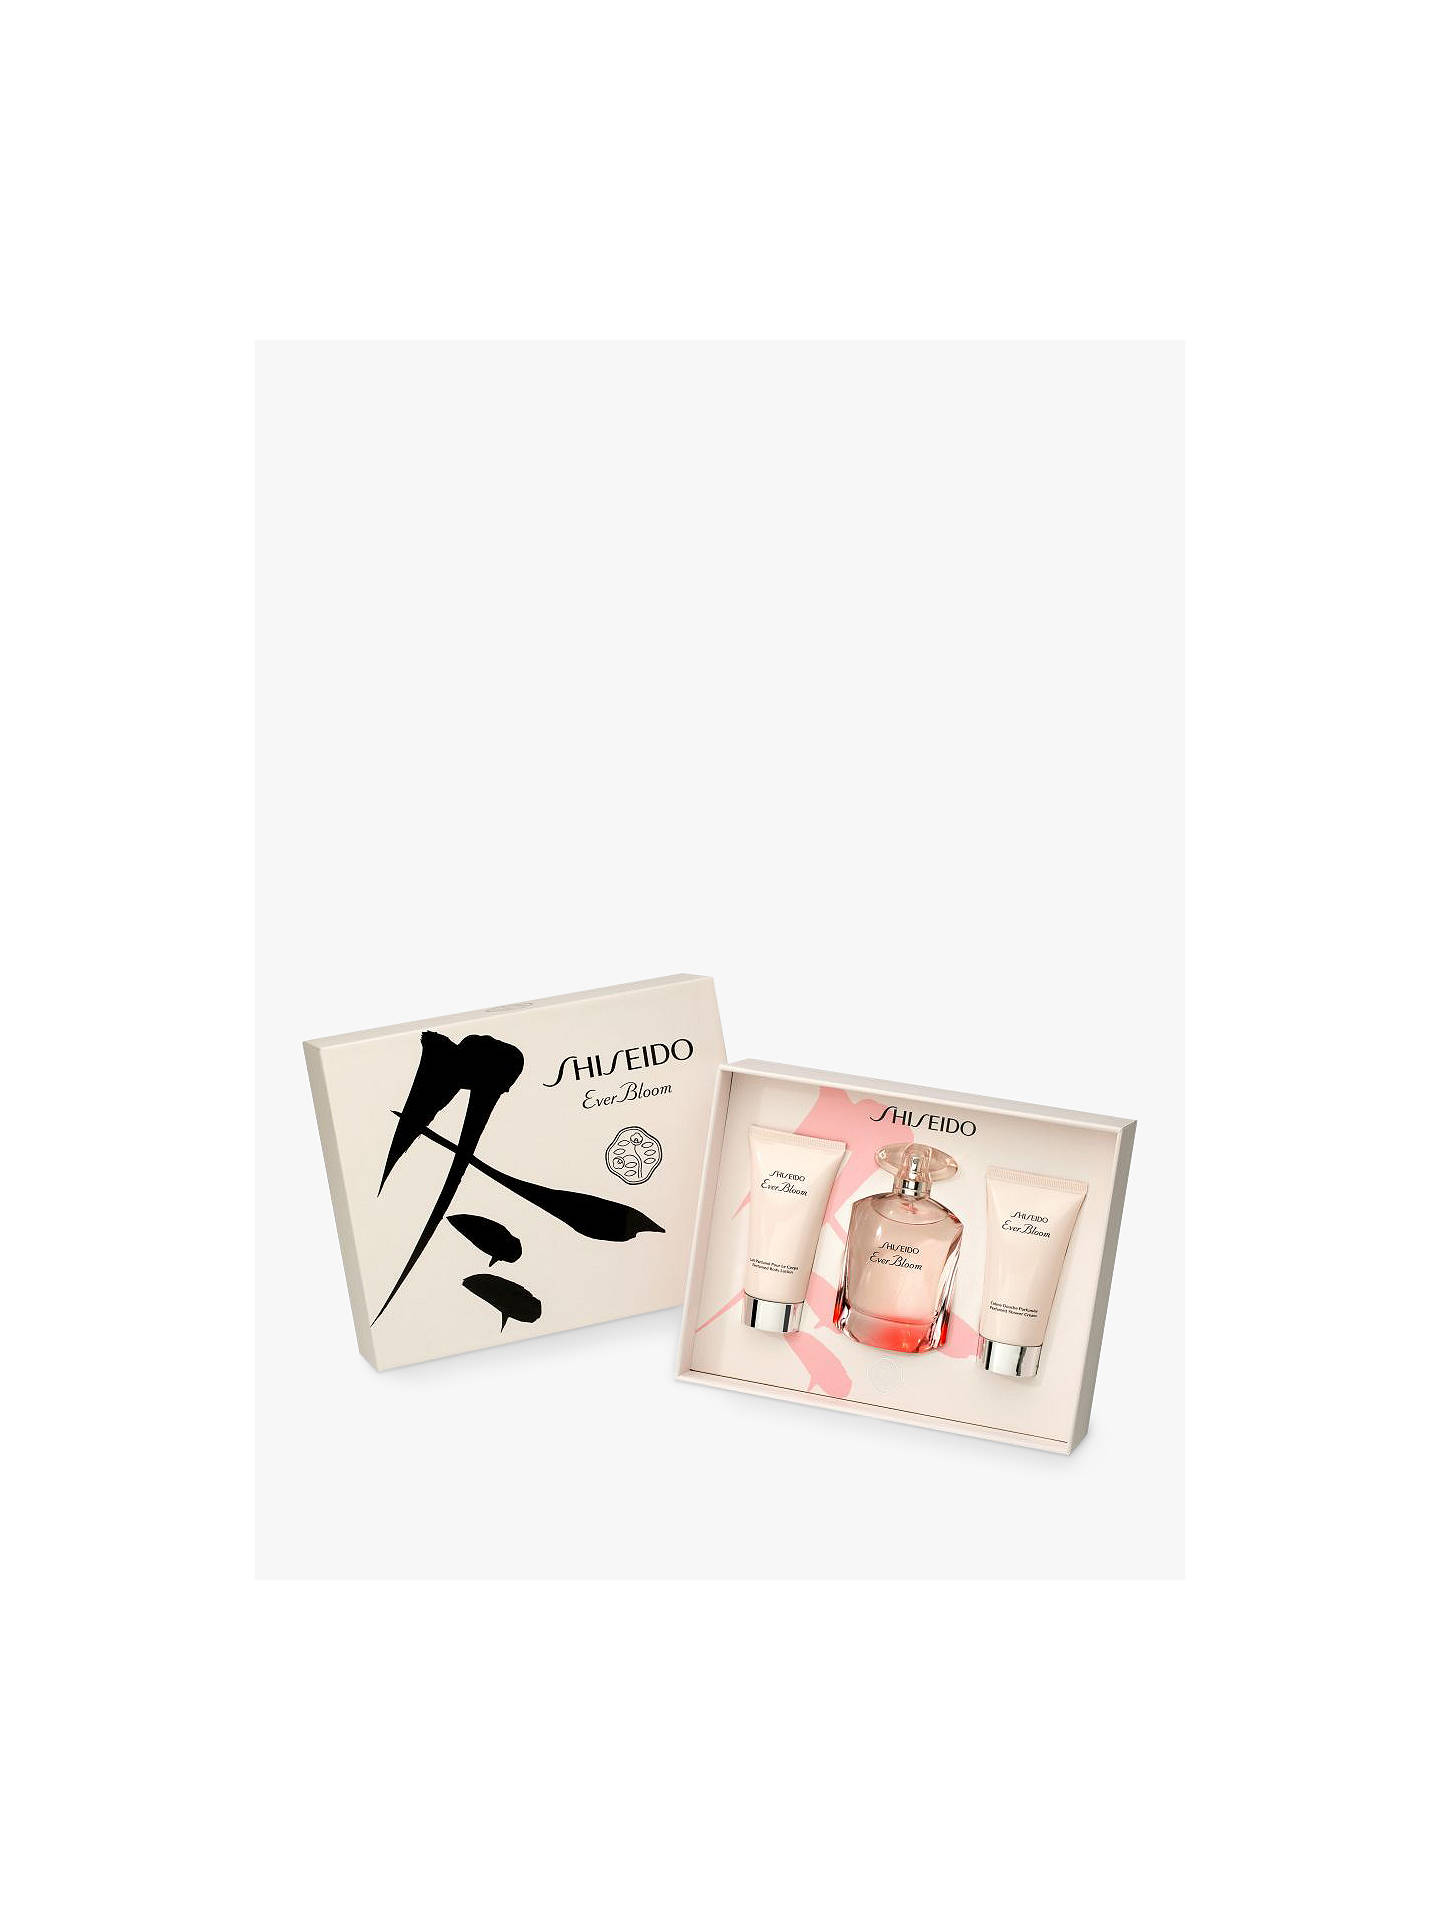 Buy Shiseido Ever Bloom 50ml Eau de Parfum Fragrance Gift Set Online at johnlewis.com